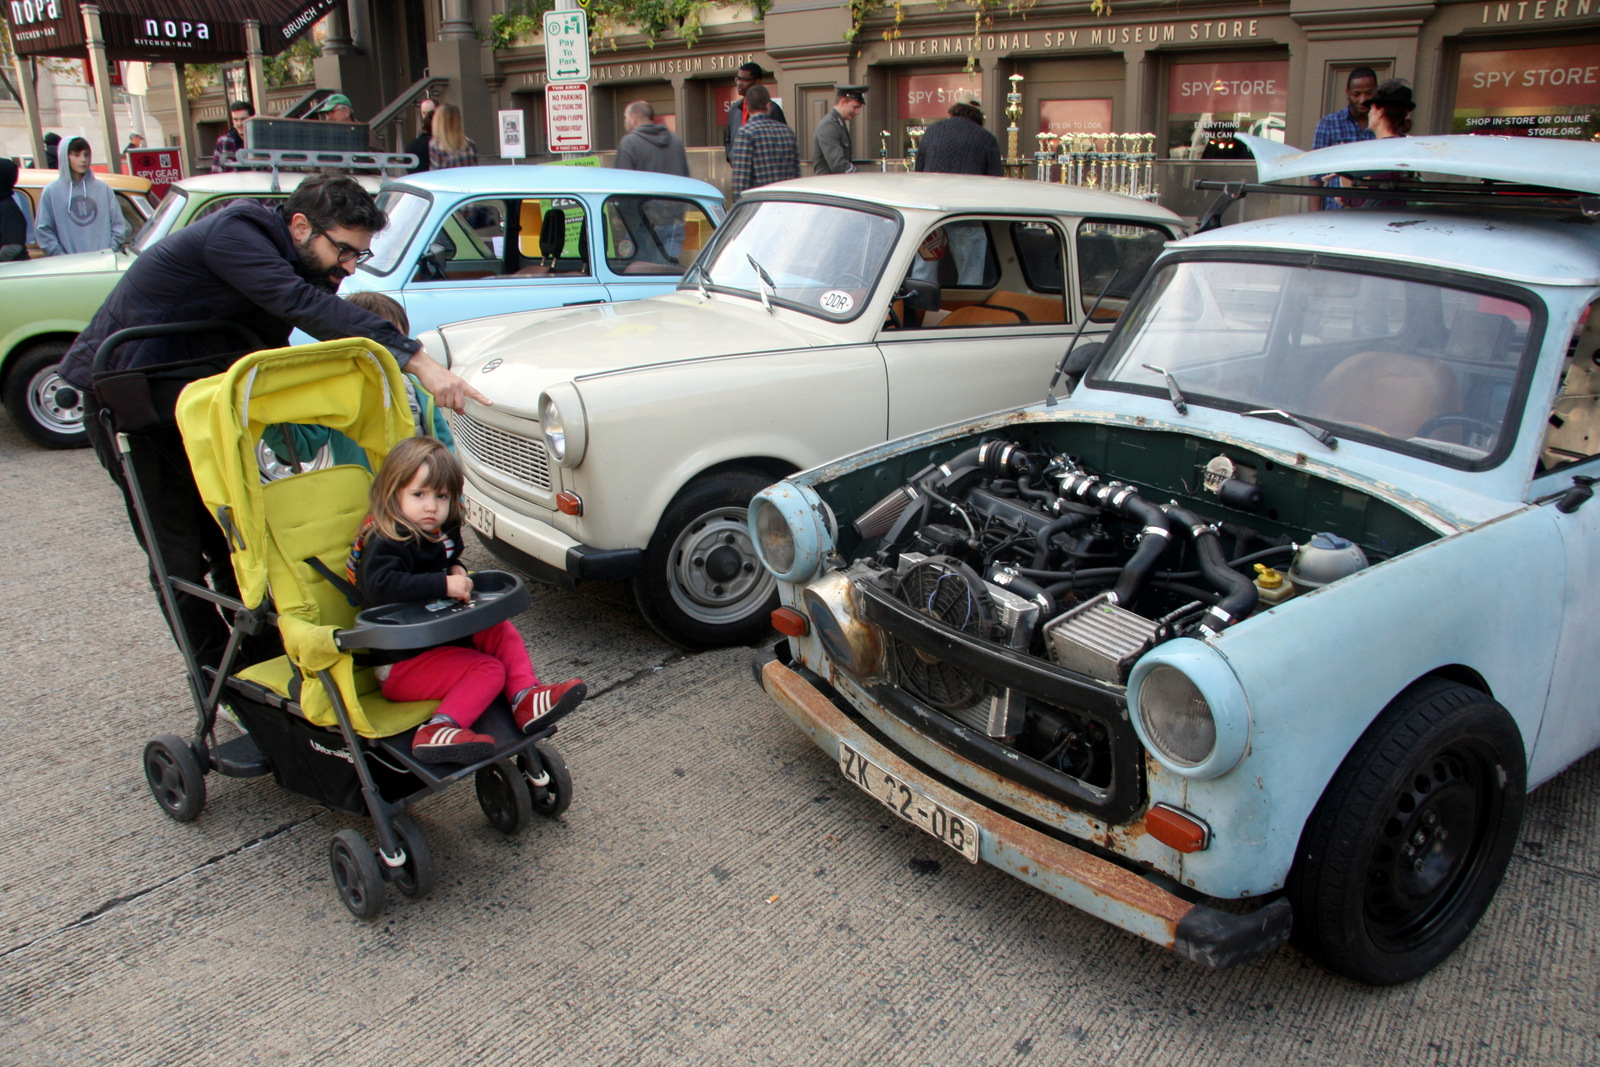 Trabants don't have fuel pumps, so their fuel tanks are located up front, on top of the engine.